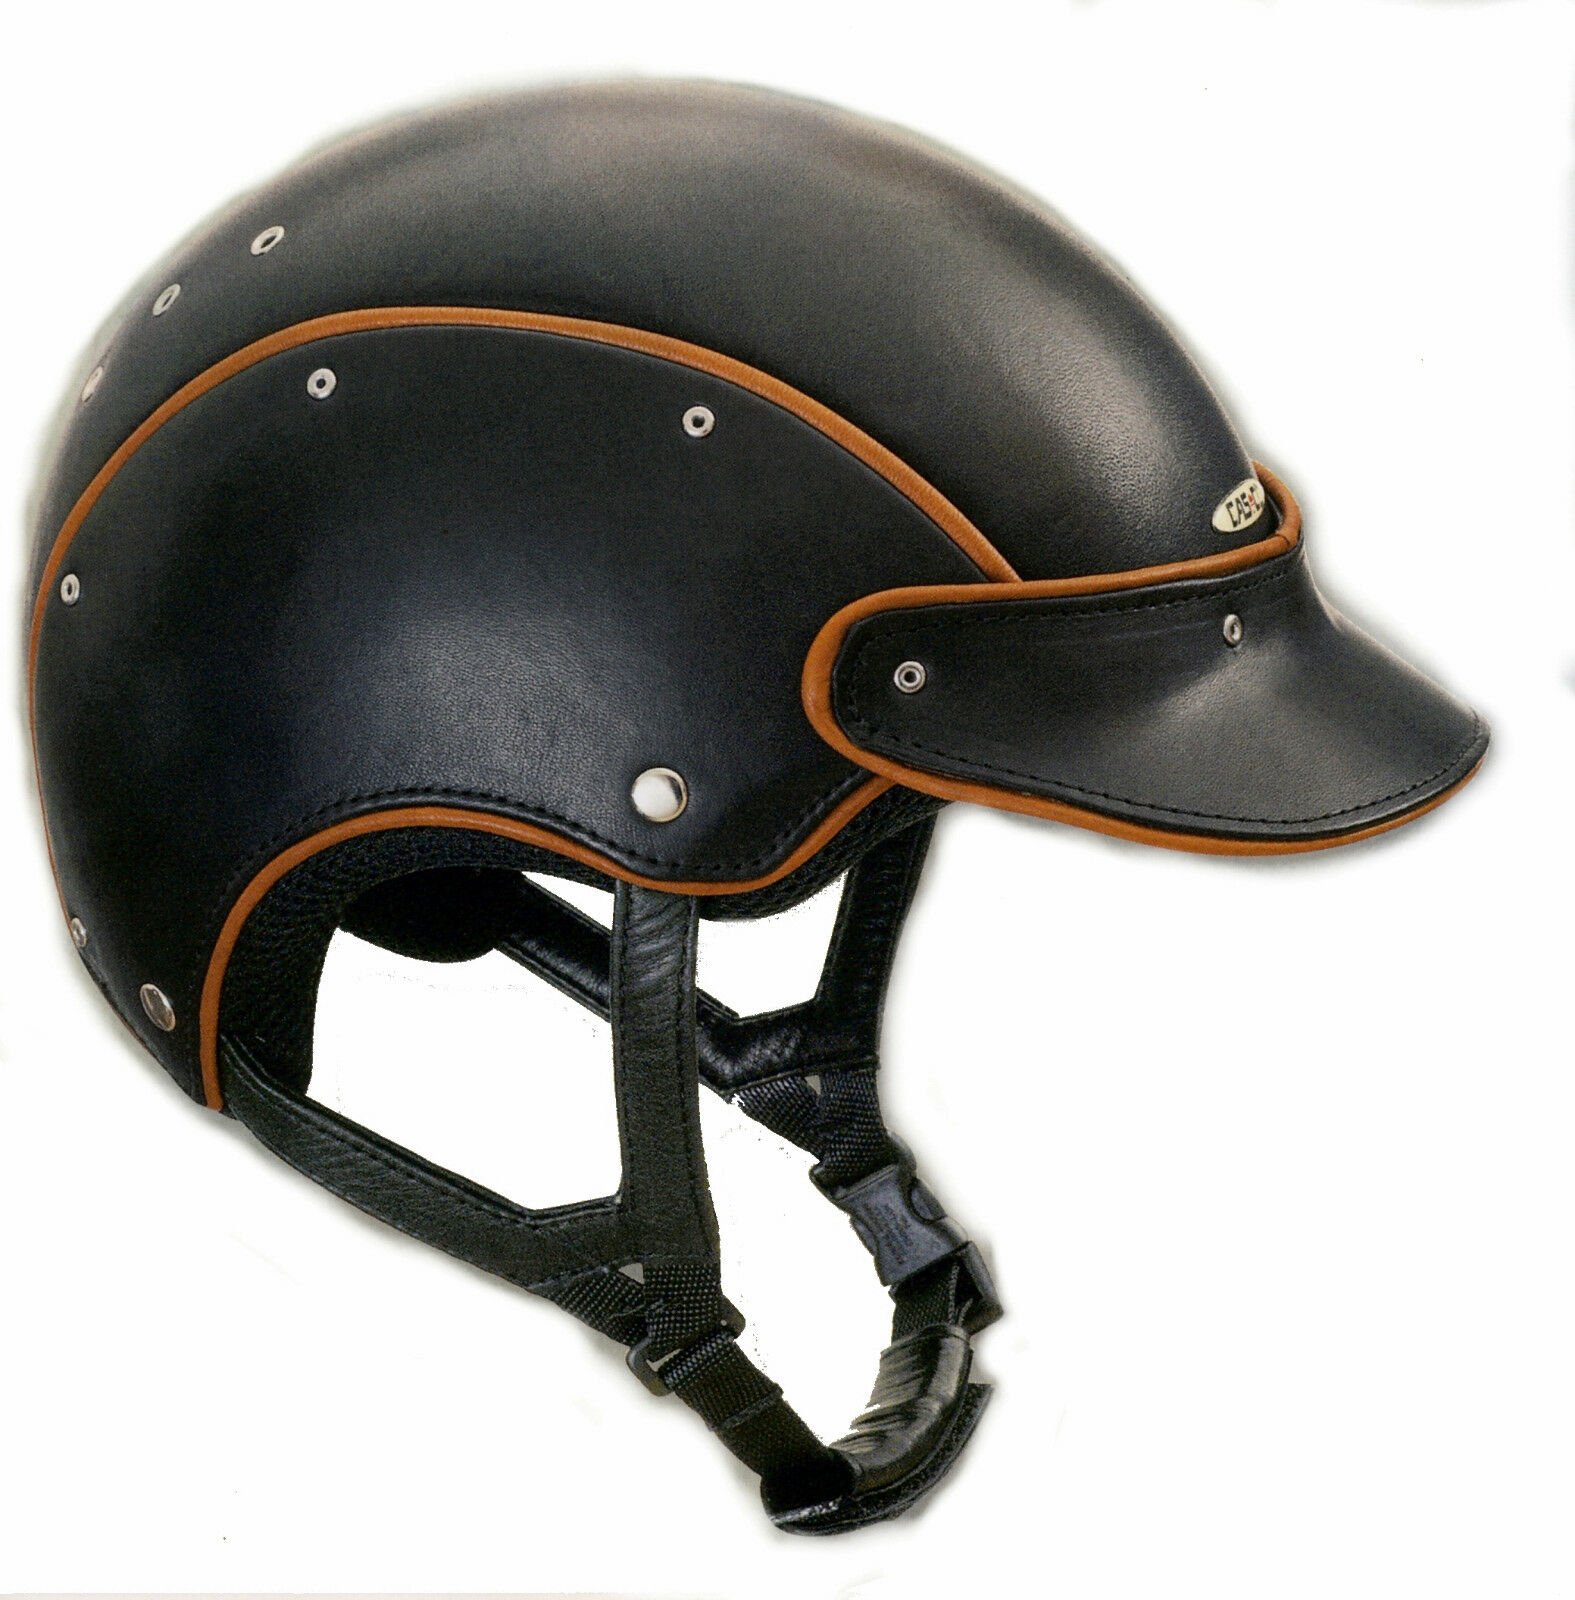 CAP CASCO SPIRIT PELLE LEDER LEATHER 57